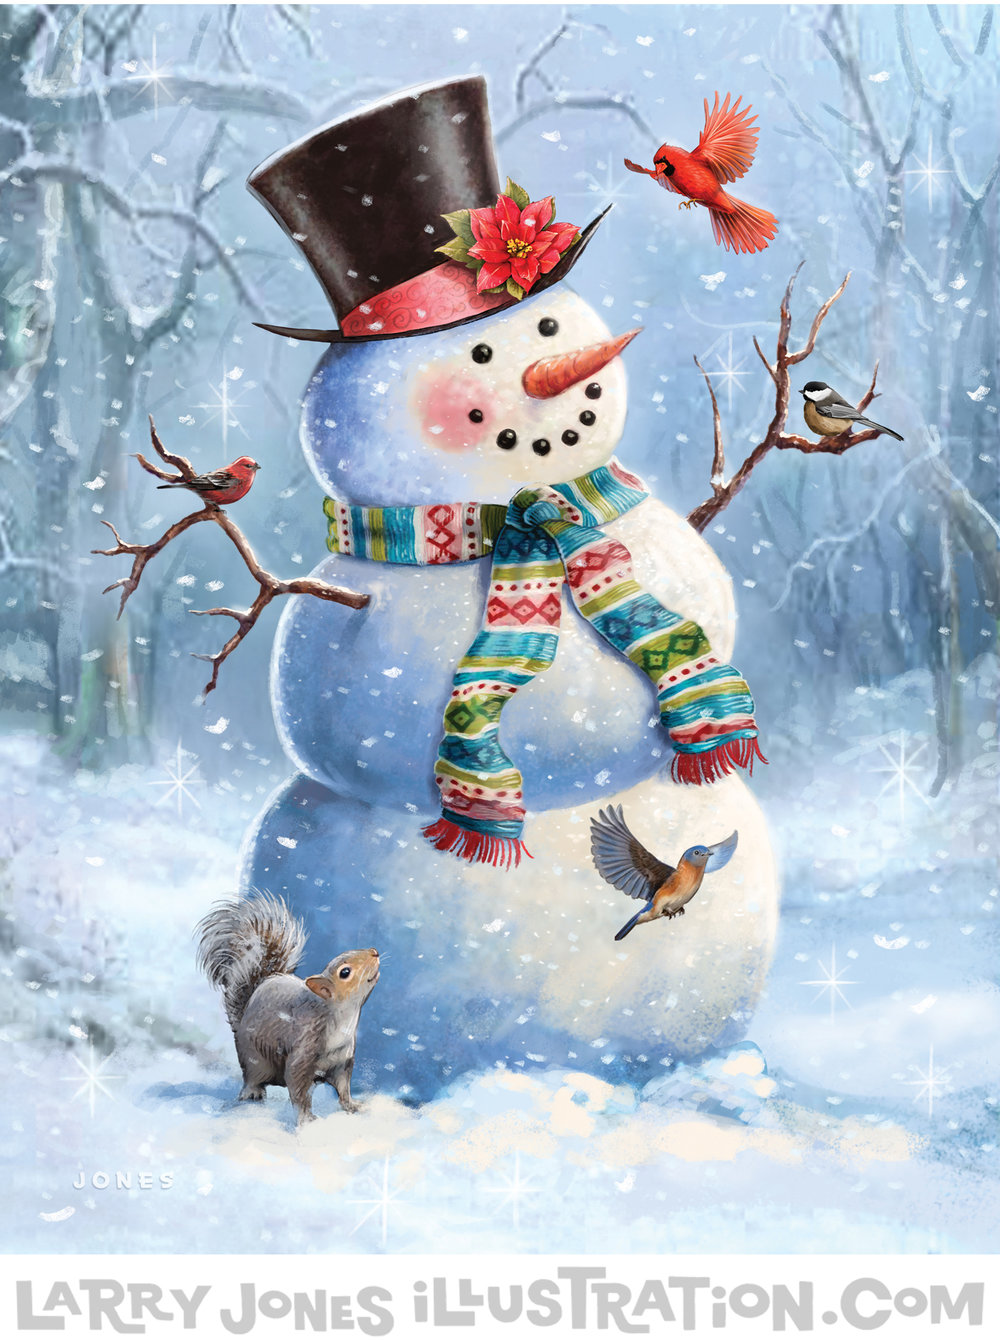 snowman-birds-illustration.jpg